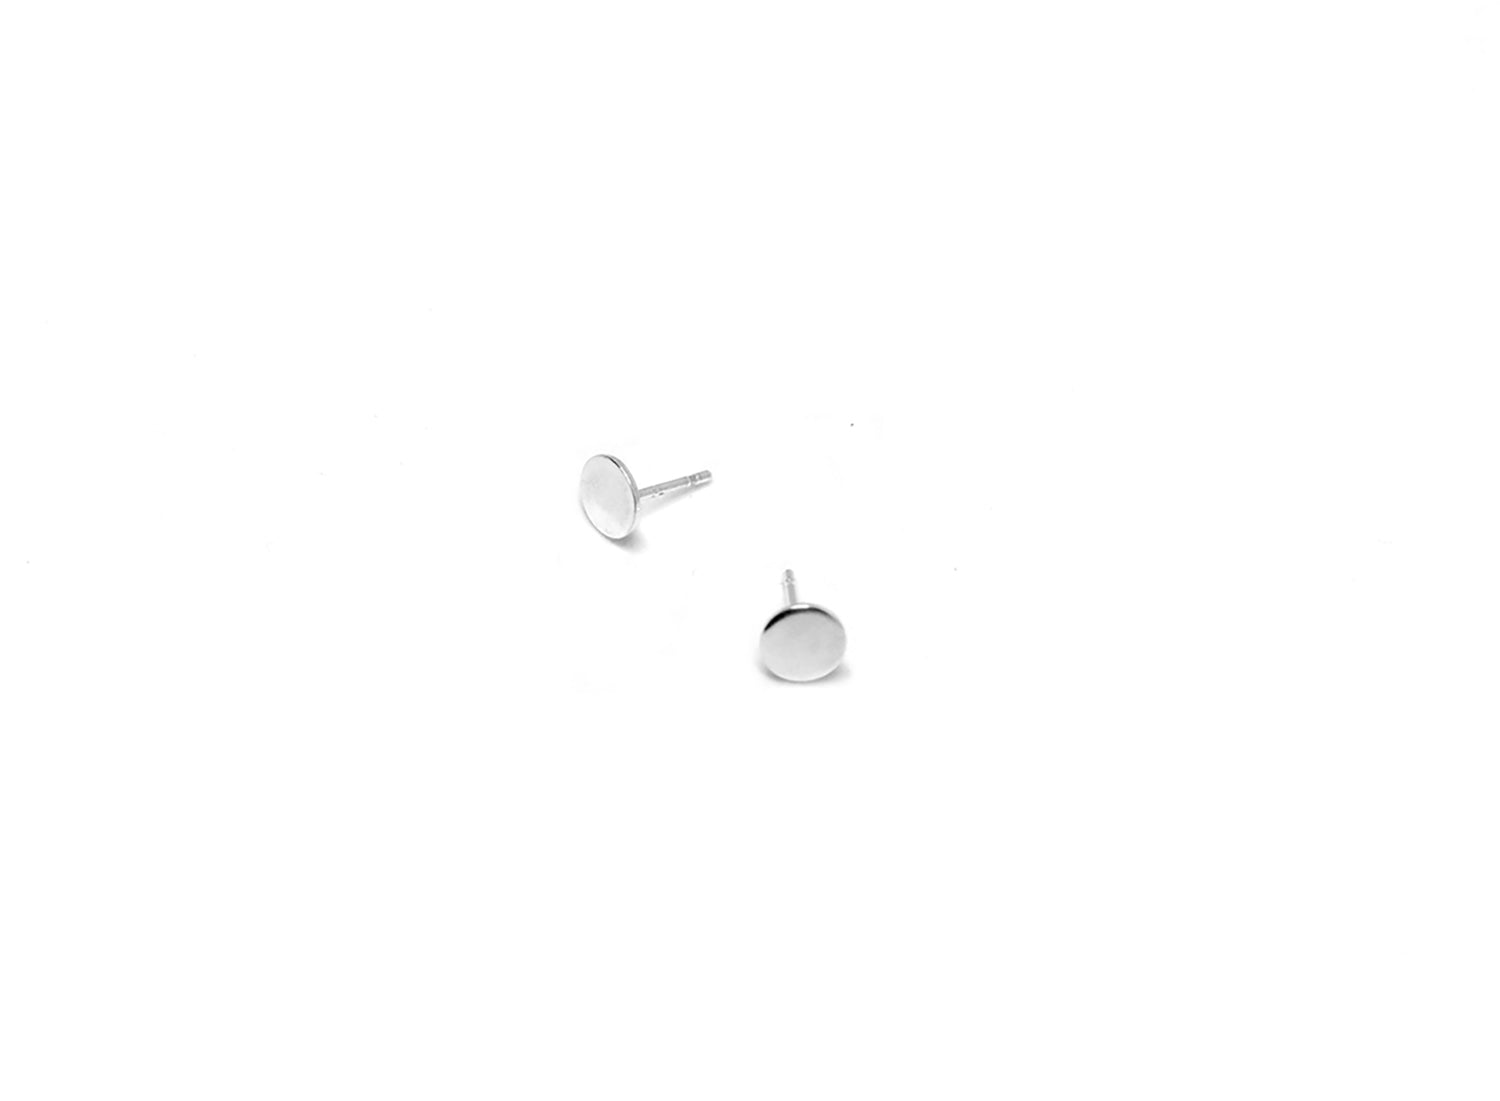 llayers jewelry earrings rise silver circles boucles oreilles rond cercle arget